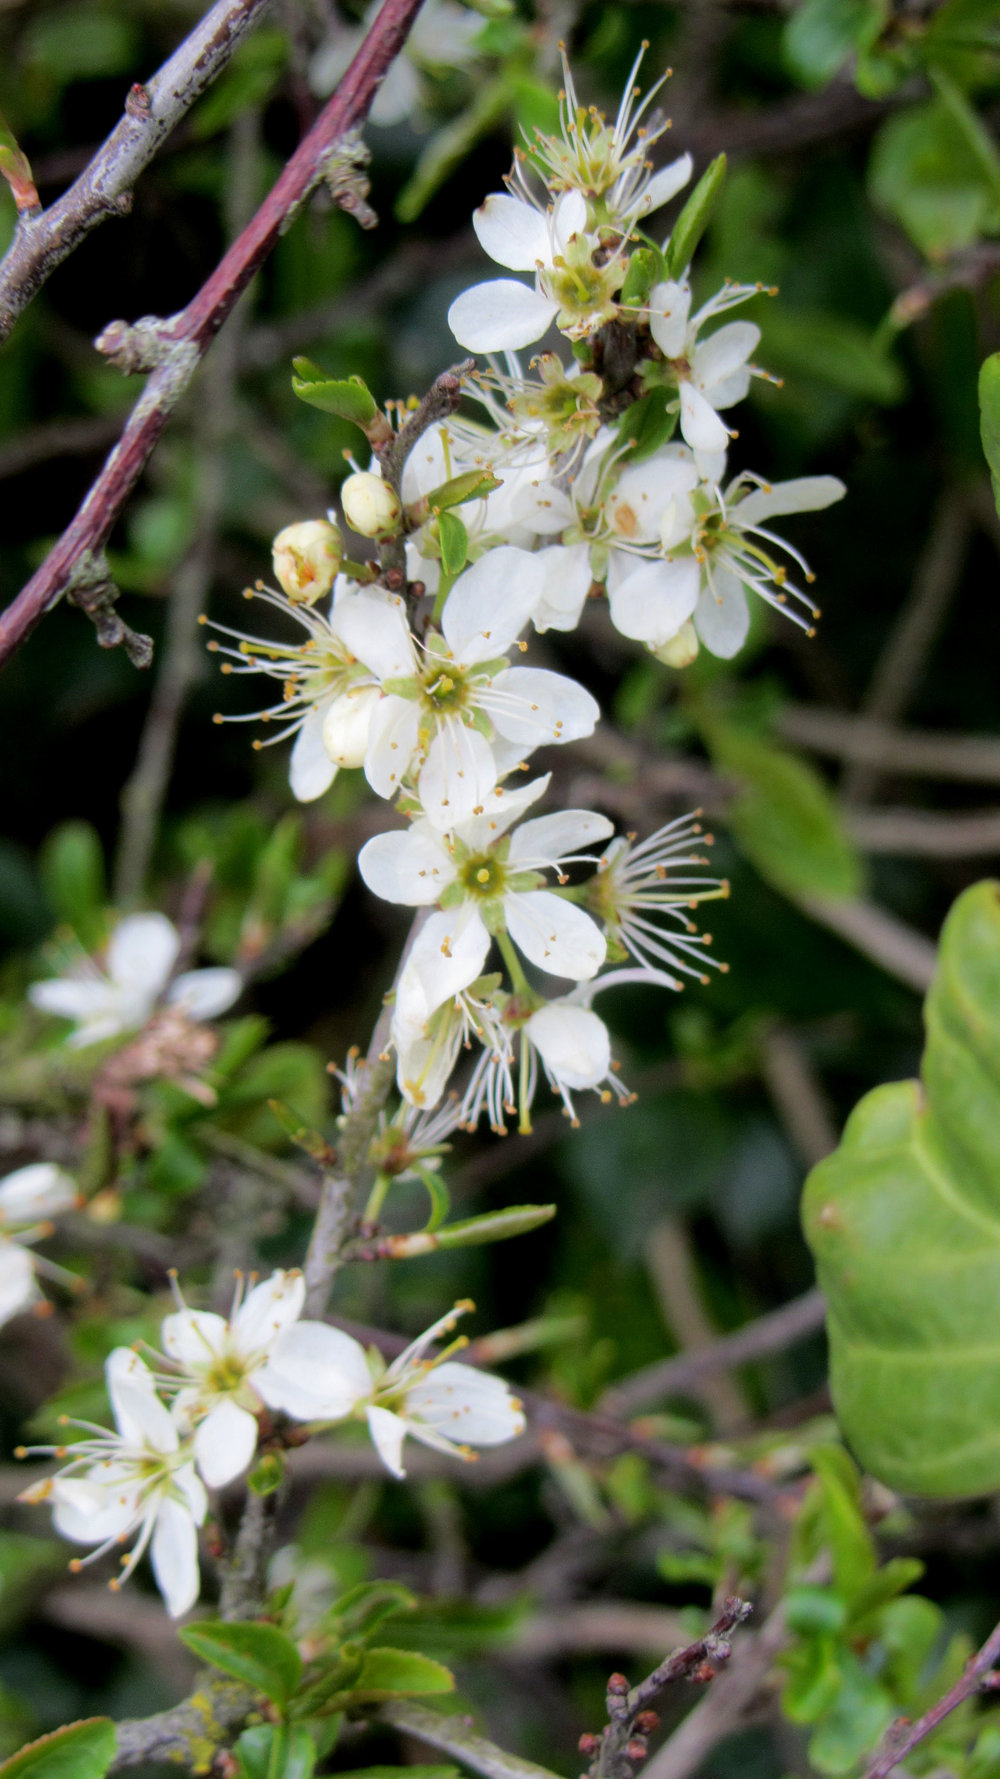 The delicate Blackthorn flower has fierce thorns!